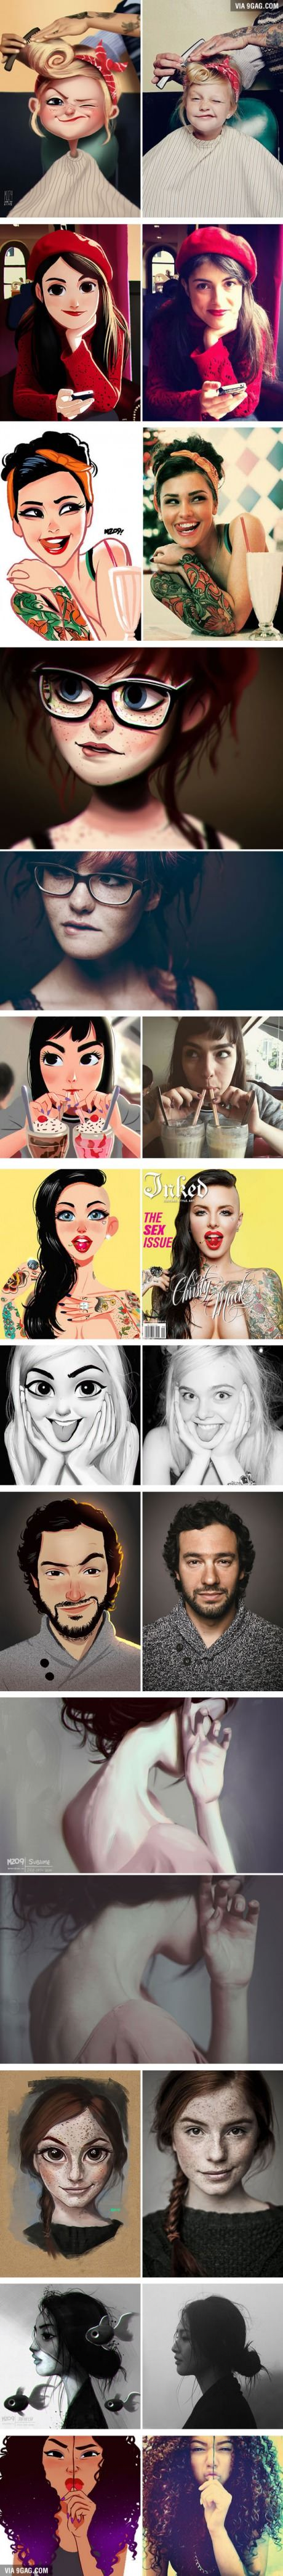 Artist Turns Photos Of Random People Into Fun #Illustrations (By Julio Cesar)